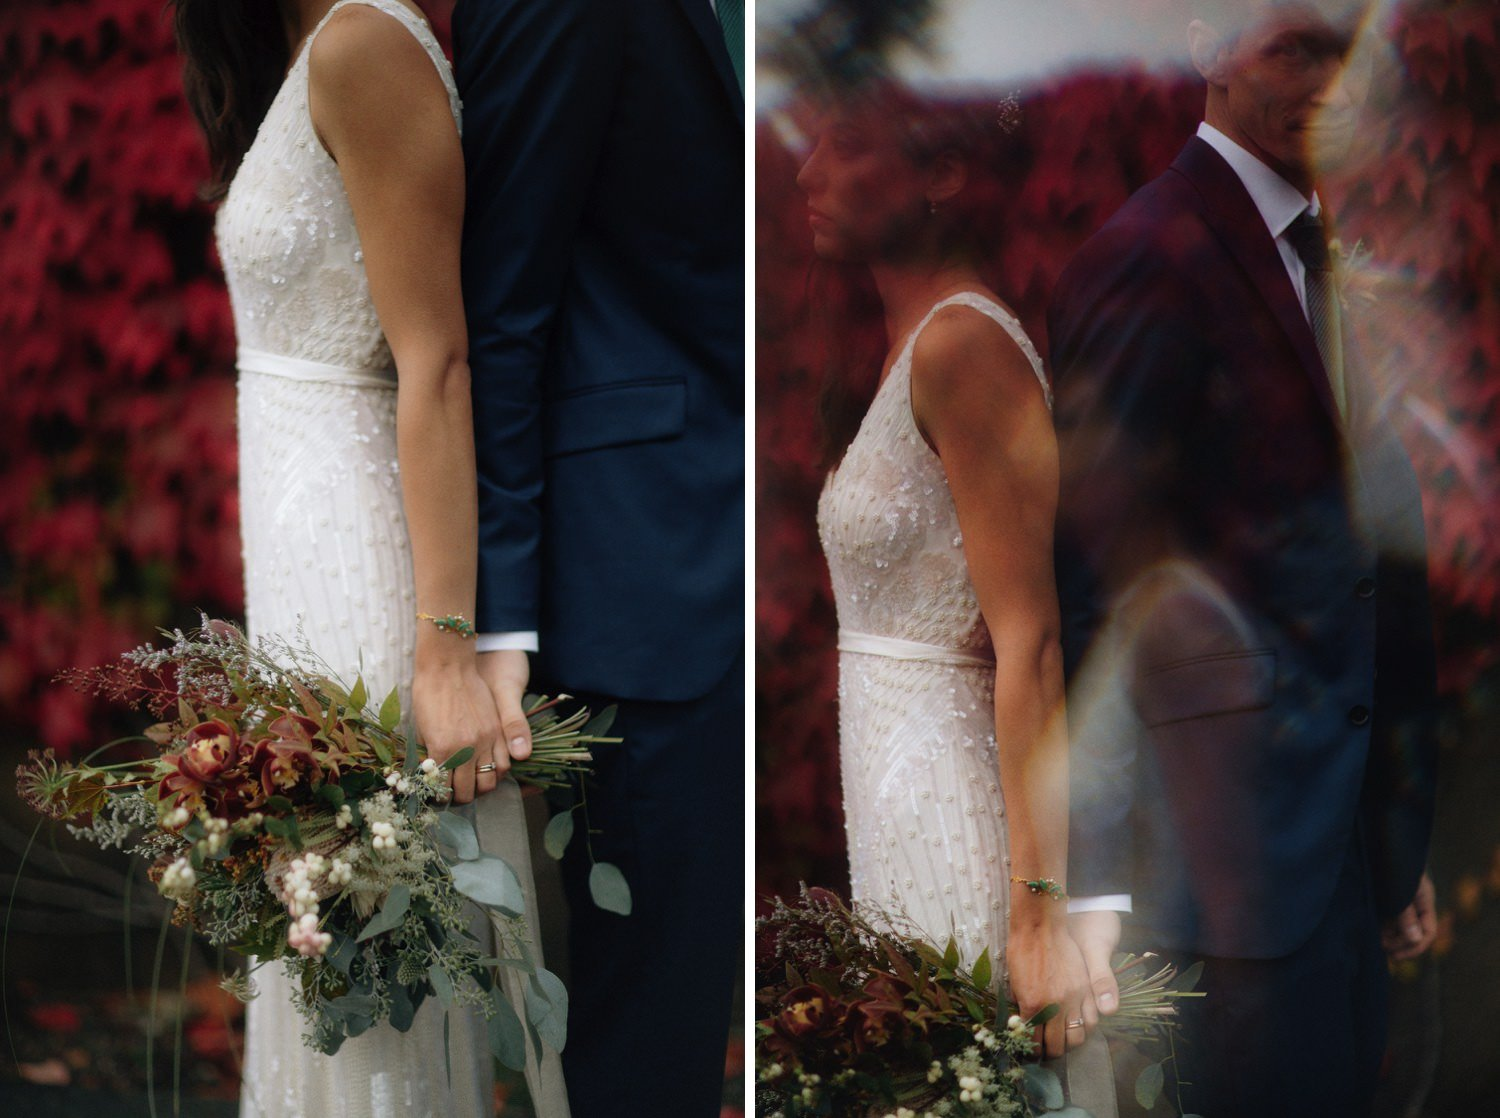 red leaves form perfect backdrop for wedding photos at ubc botanical garden